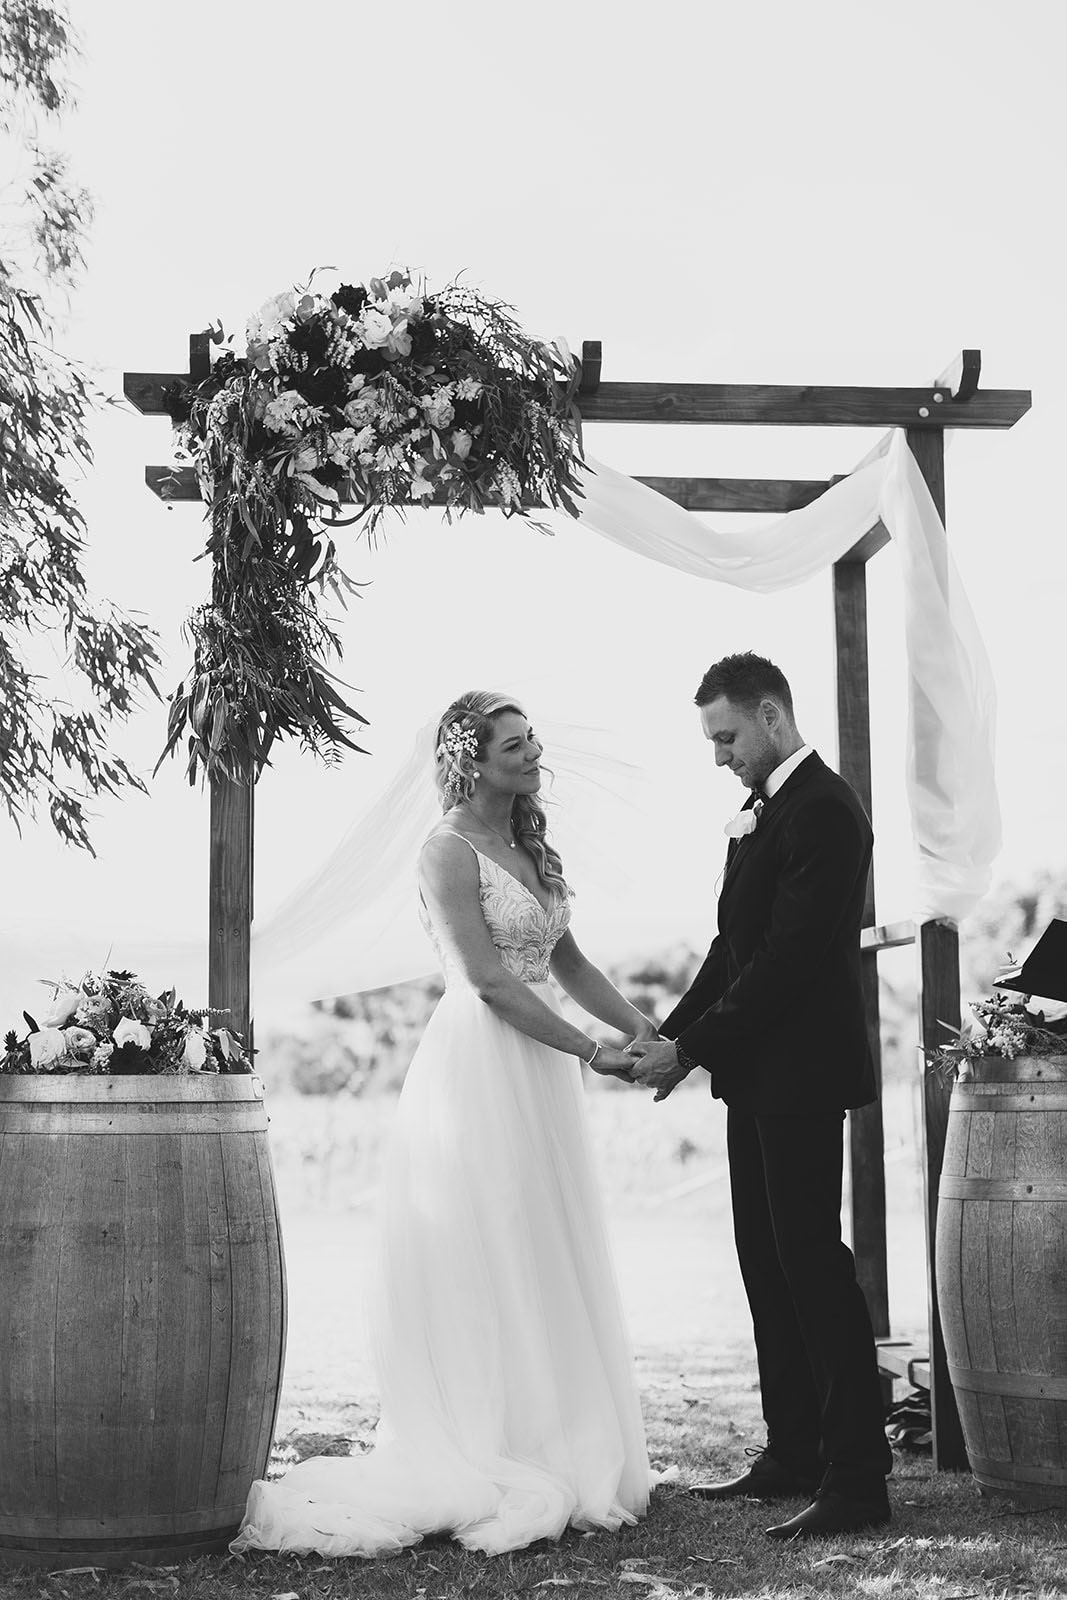 Amelia + Lyall | #RCRealBride | Real Bride | Melbourne Wedding | Princess Wedding Dress